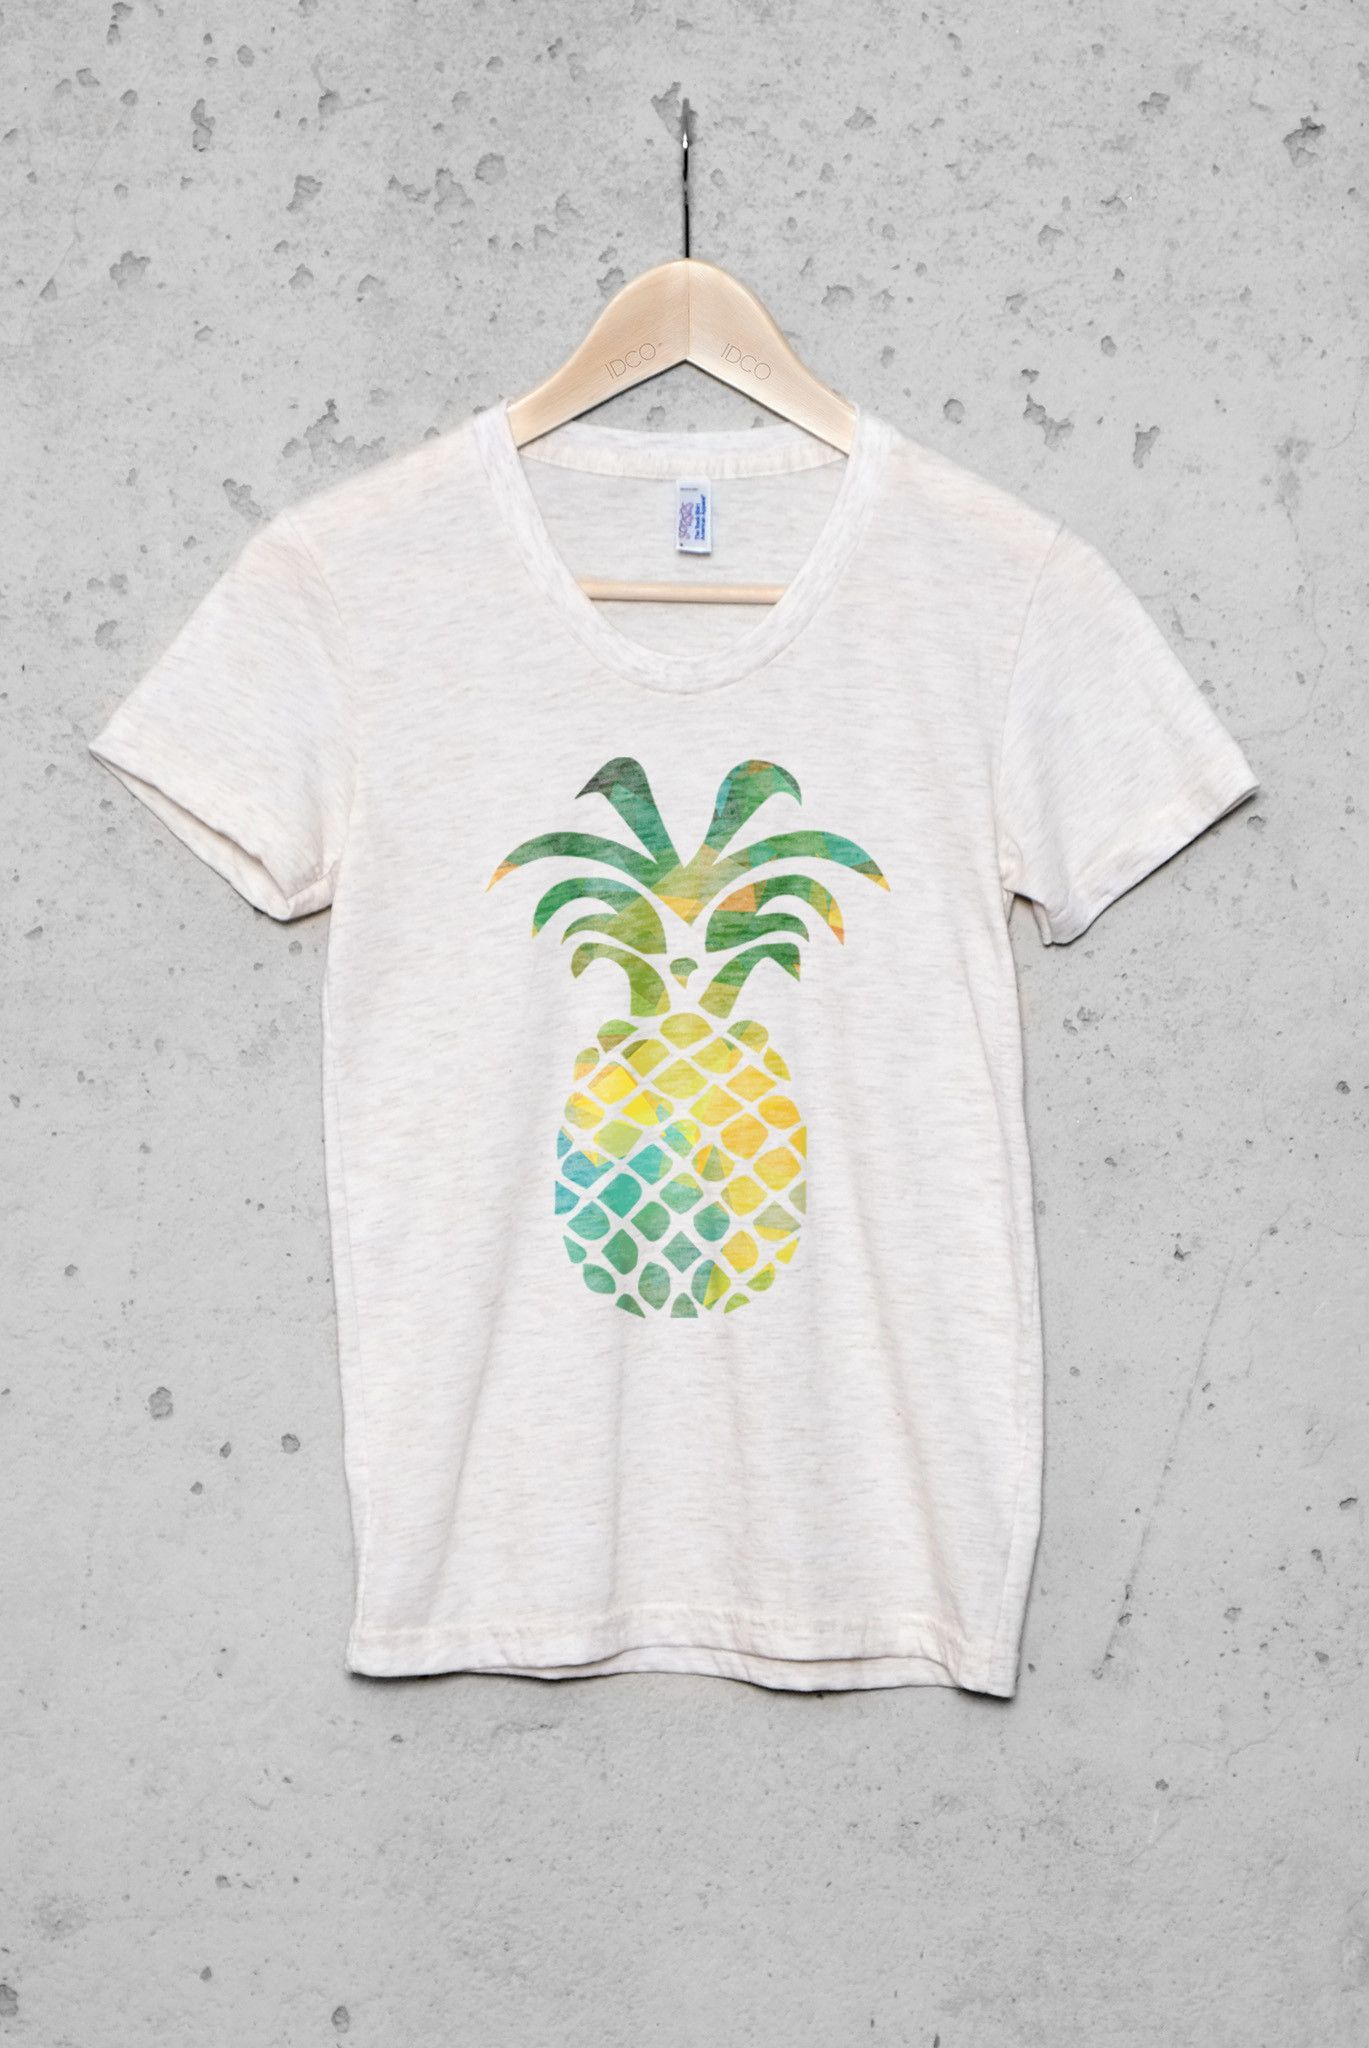 167c5f6374f7 Women's Pineapple Graphic T-Shirt - Oatmeal | Kaylee | Pineapple ...